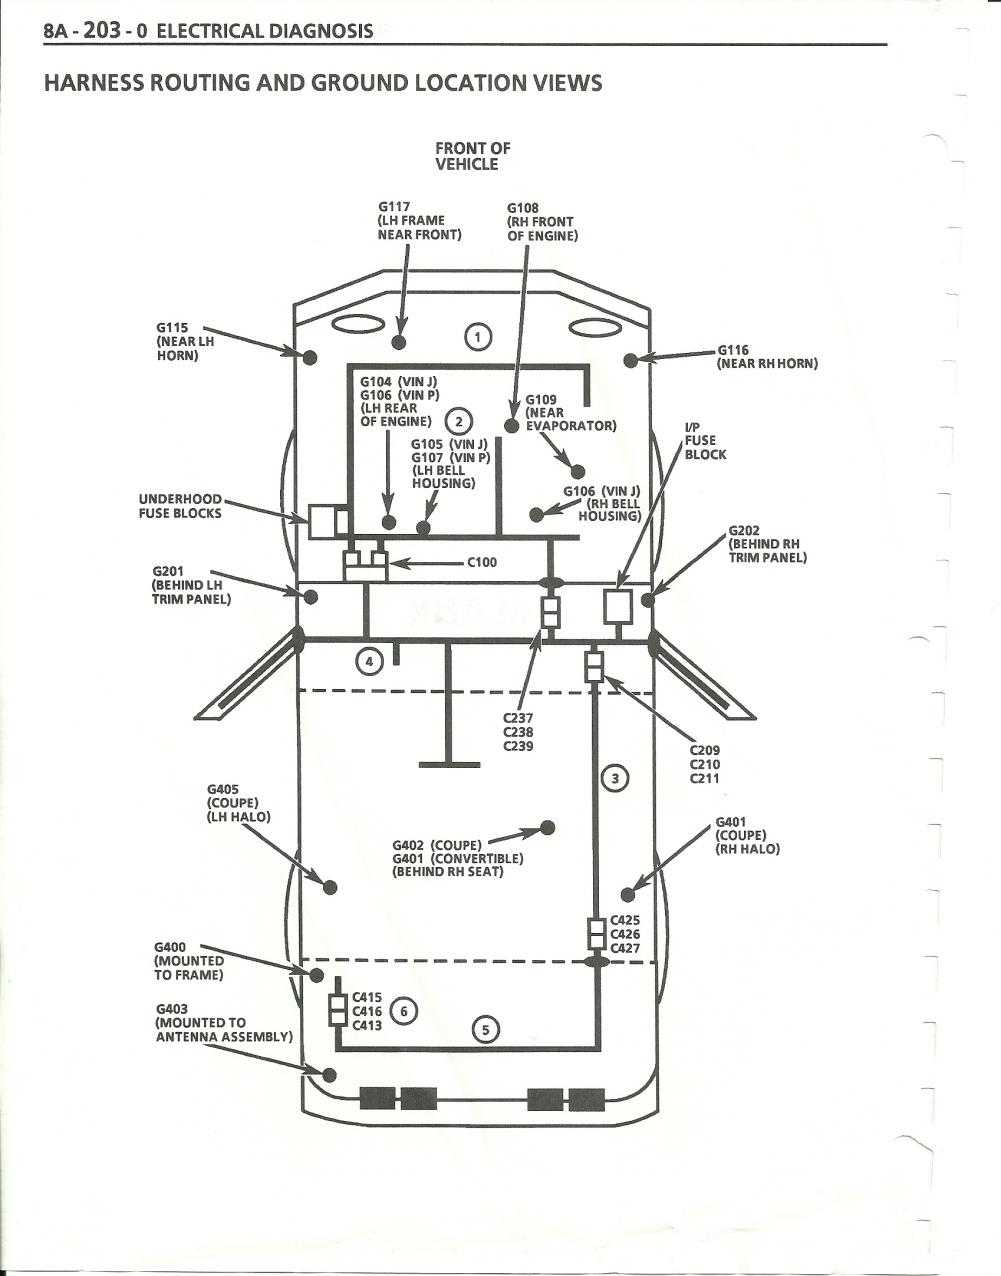 1984 corvette ground wire locations